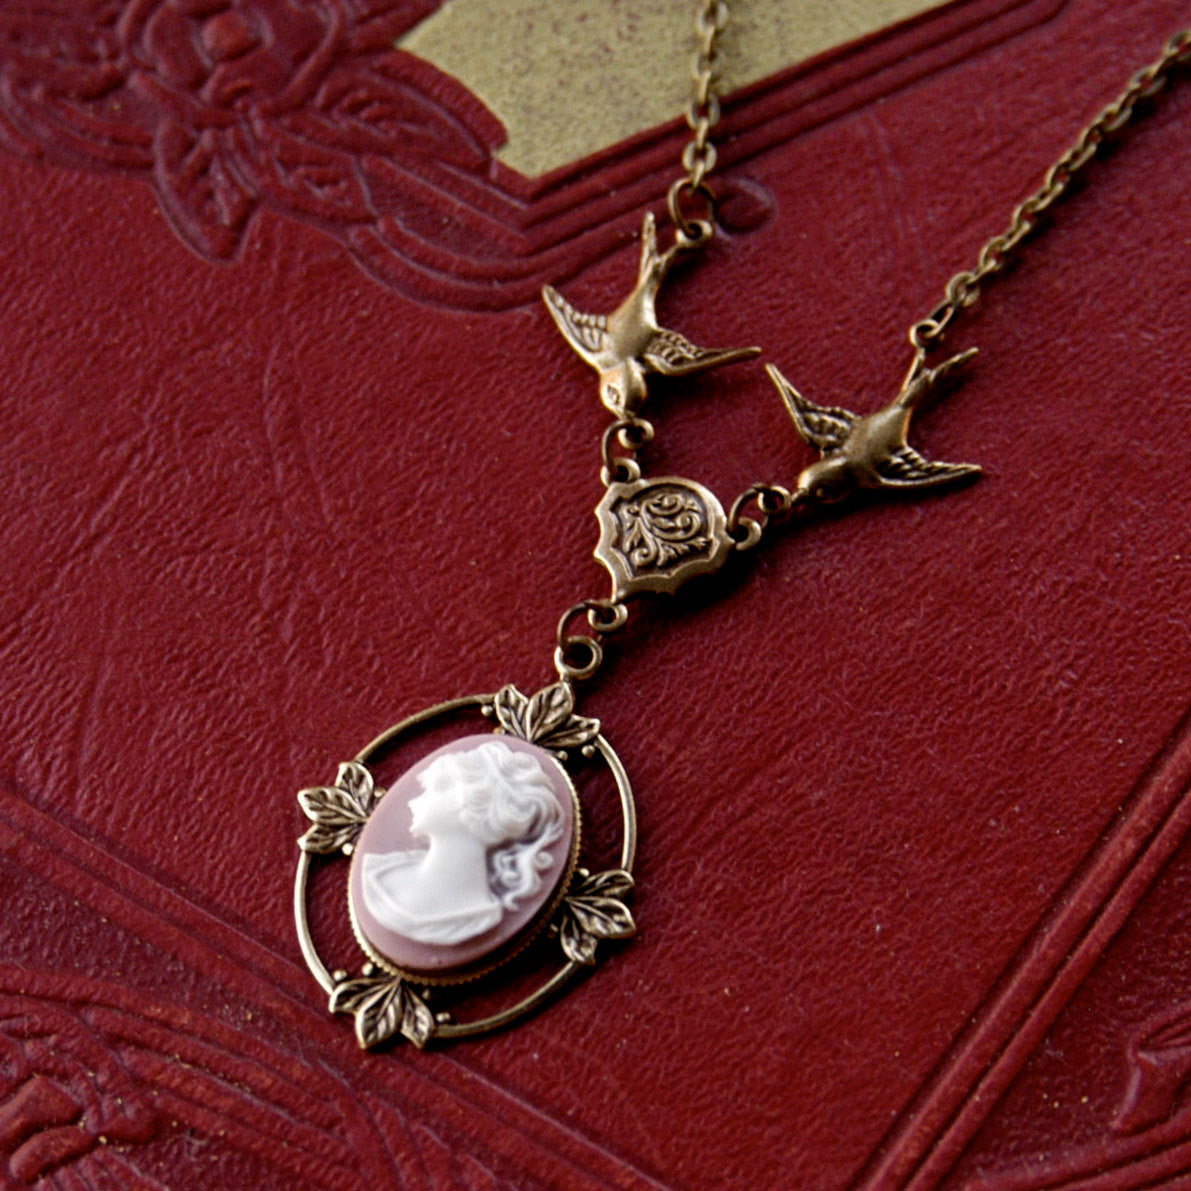 Woman Vintage Style Limited Edition Victorian Floral Cameo Gold-Plated Necklace Spinner Necklace 3 Cameos Customize You Choose